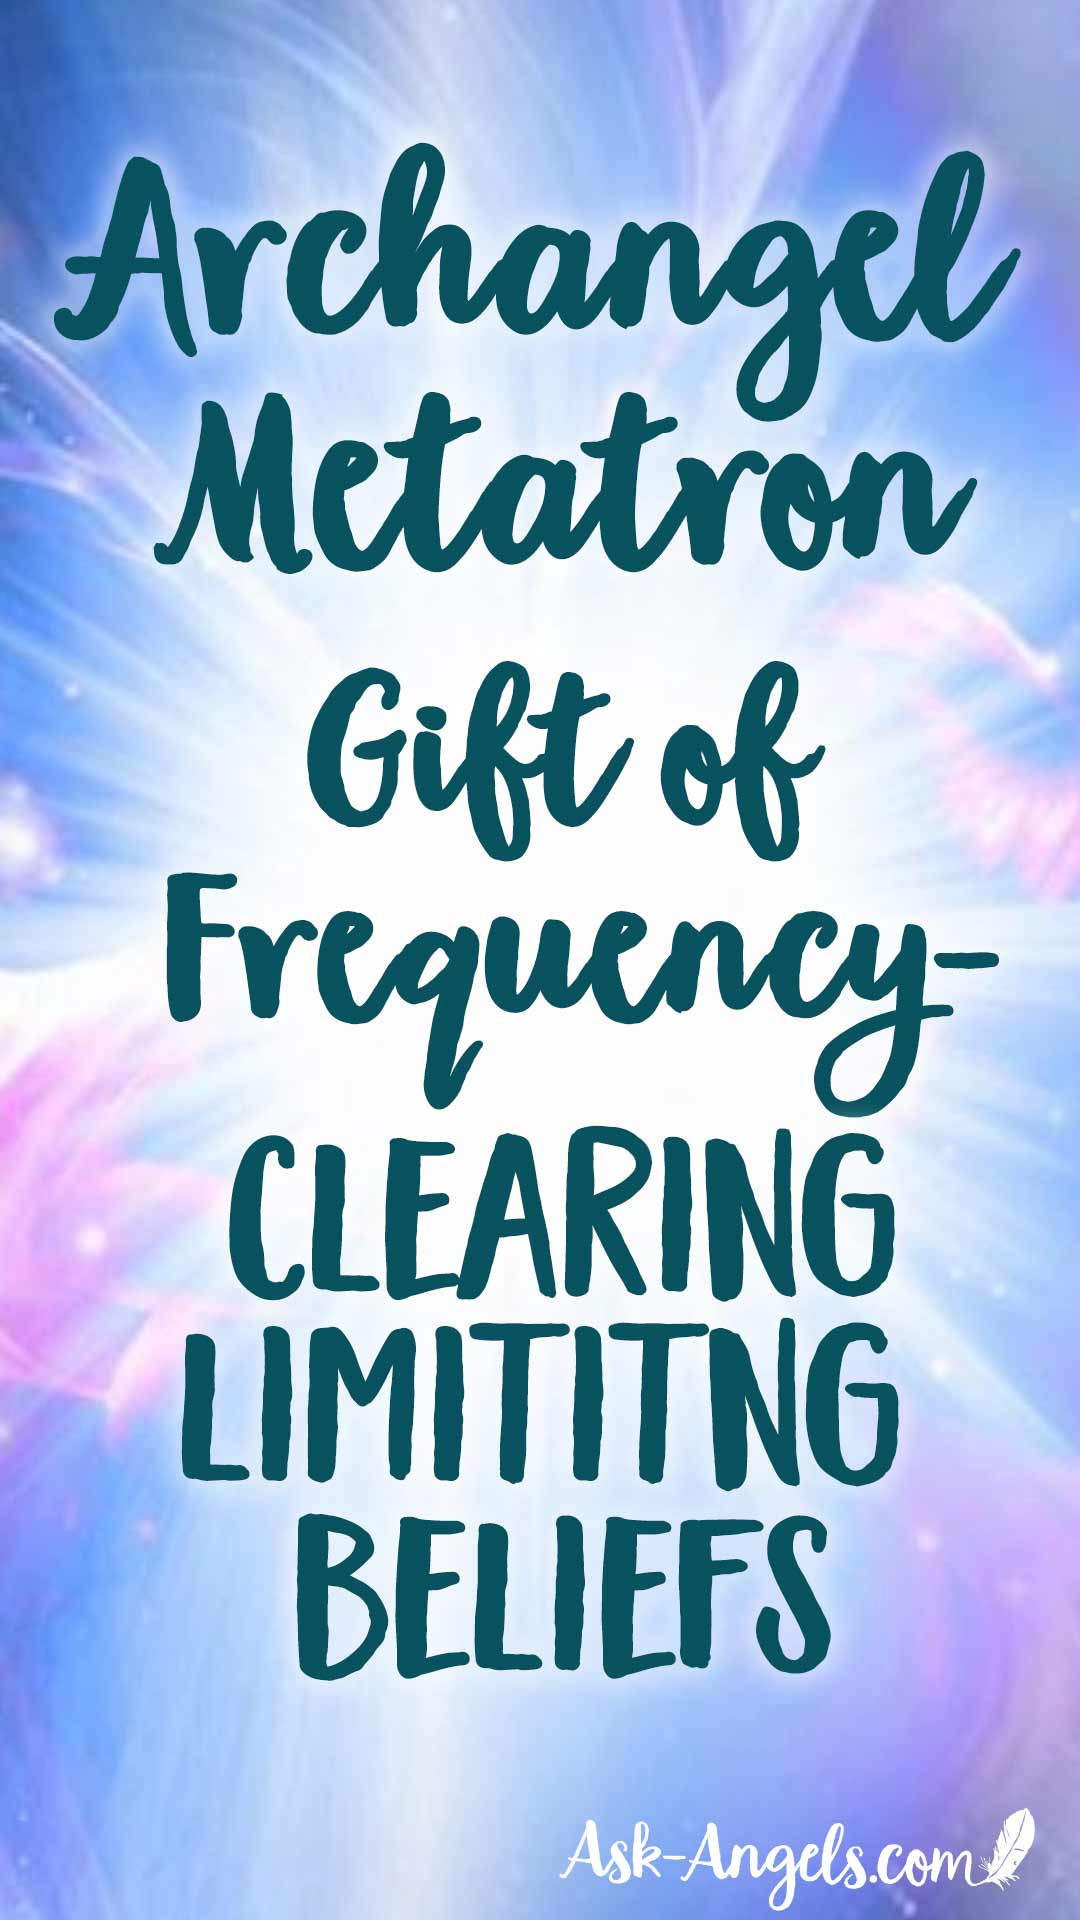 Archangel Metatron connects with a gift of frequency to support you in clearing limiting beliefs in this free angel message. #metatron